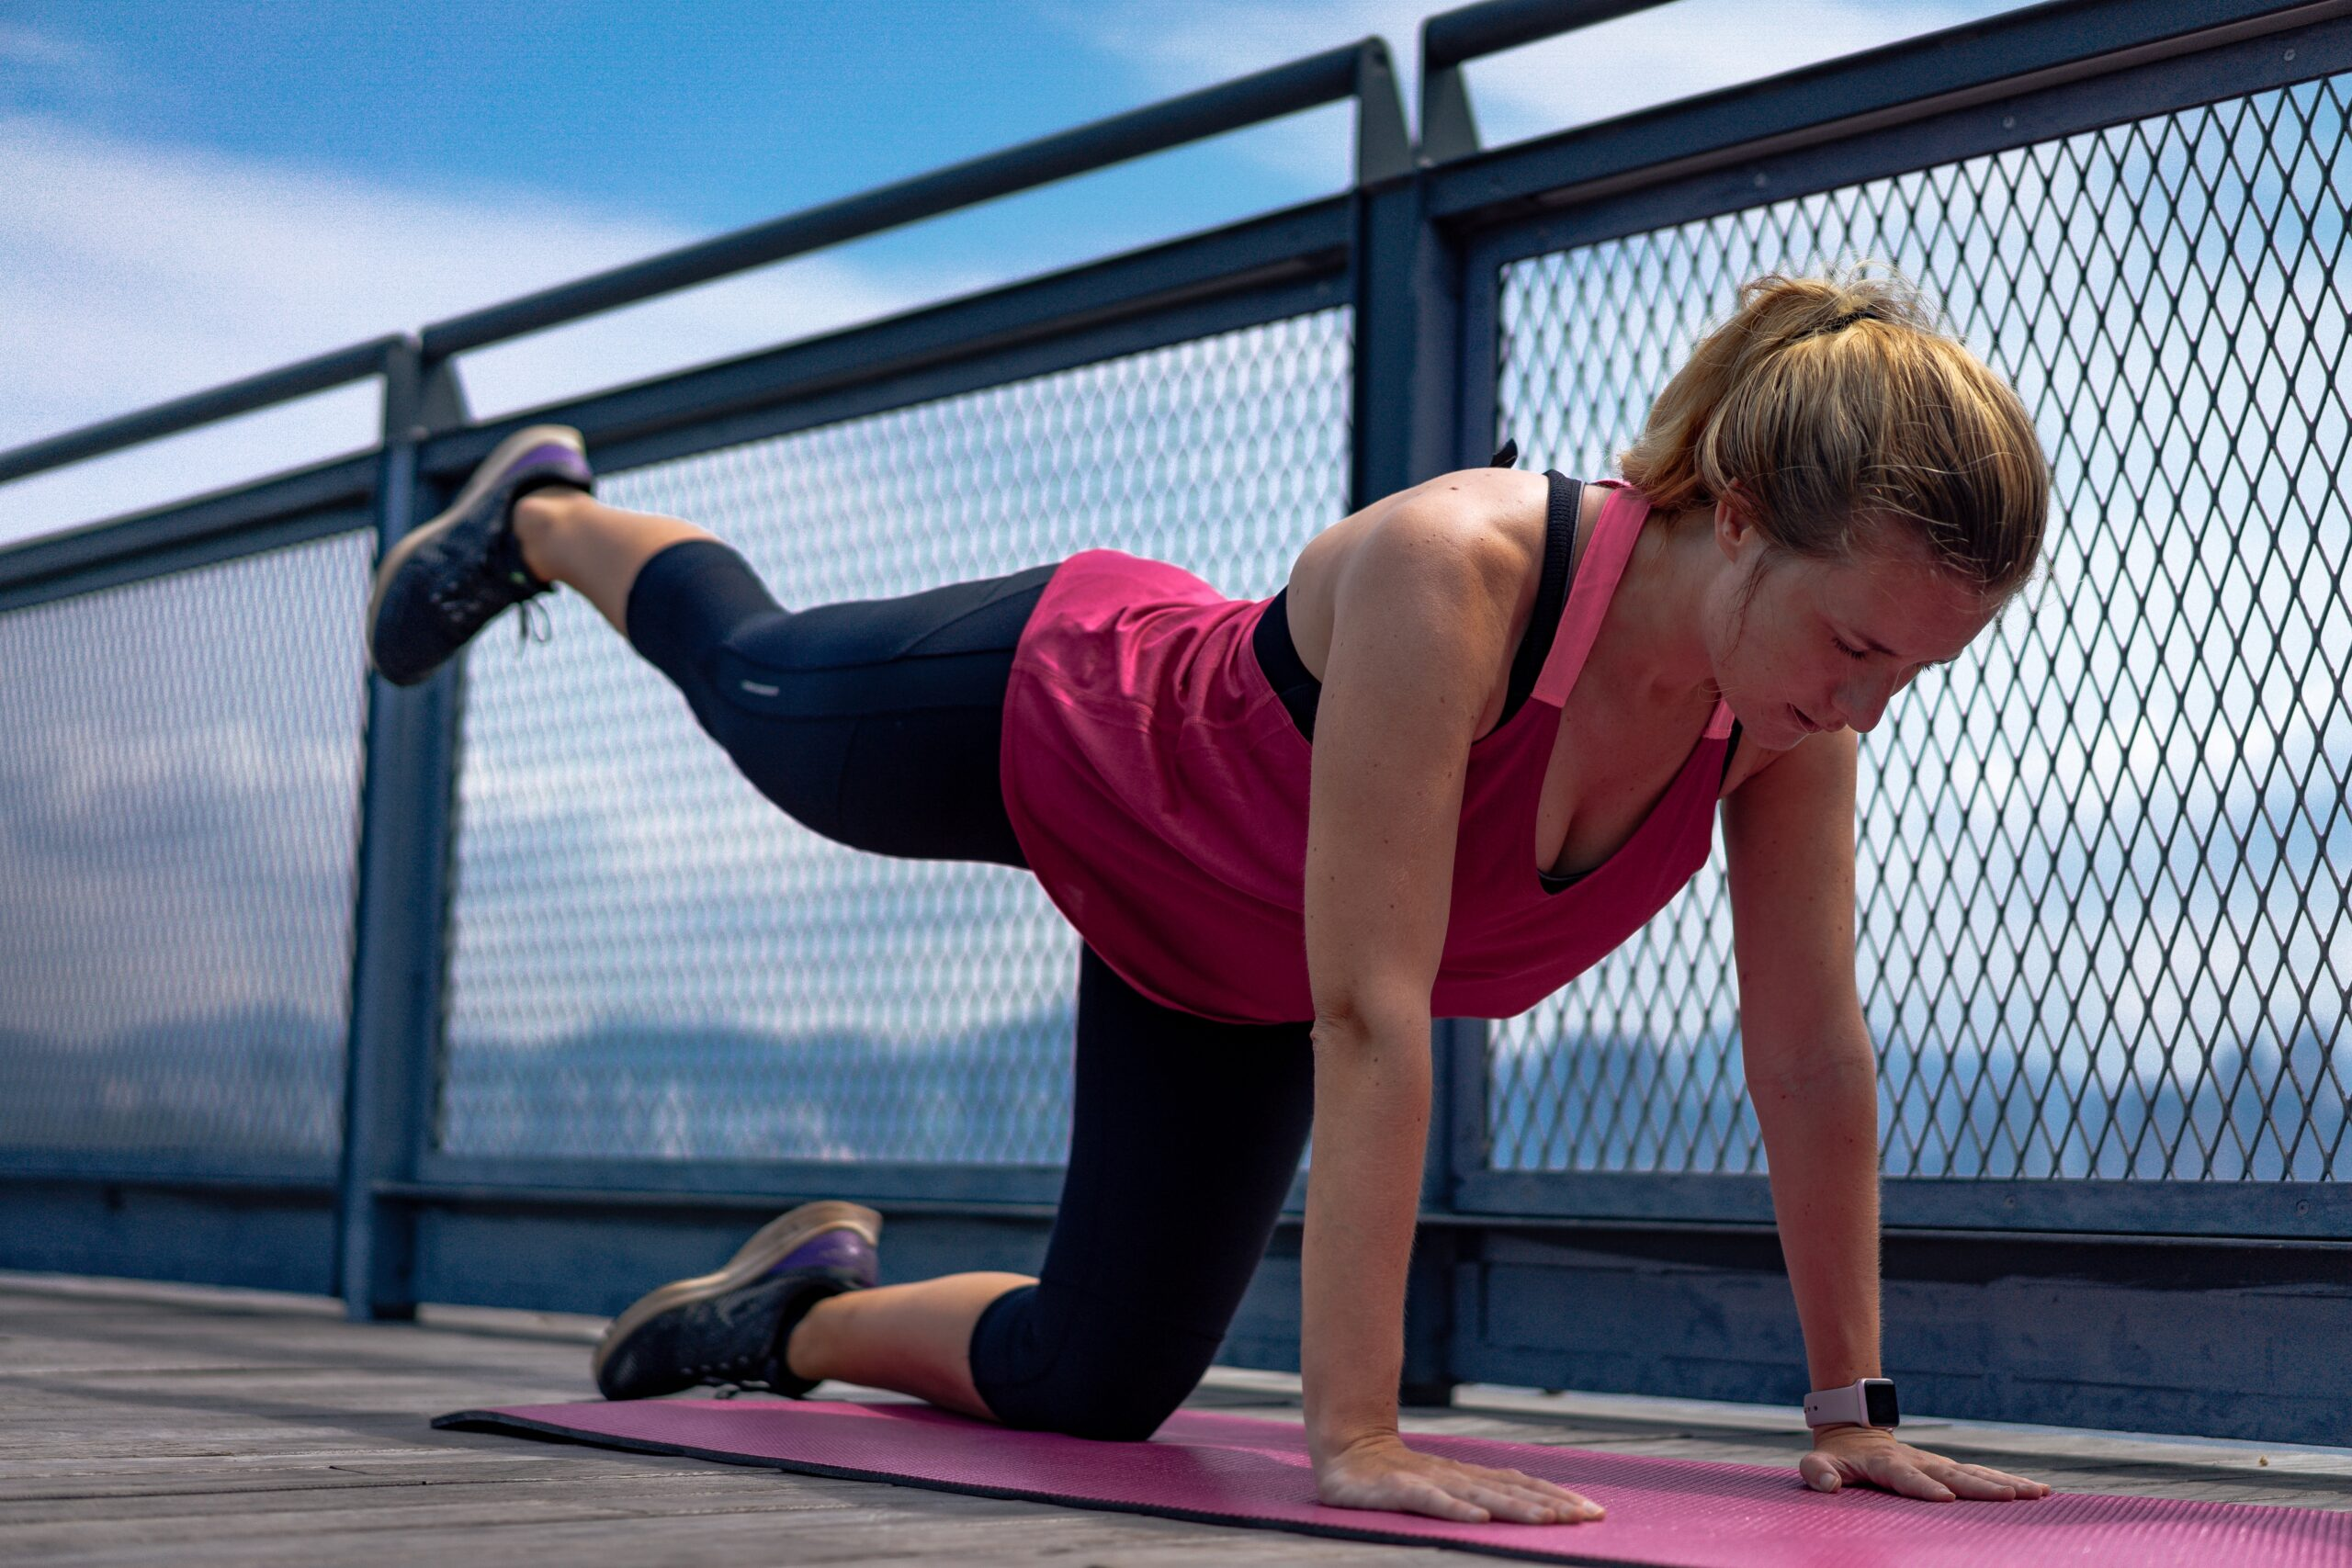 How to stay fit in a COVID world